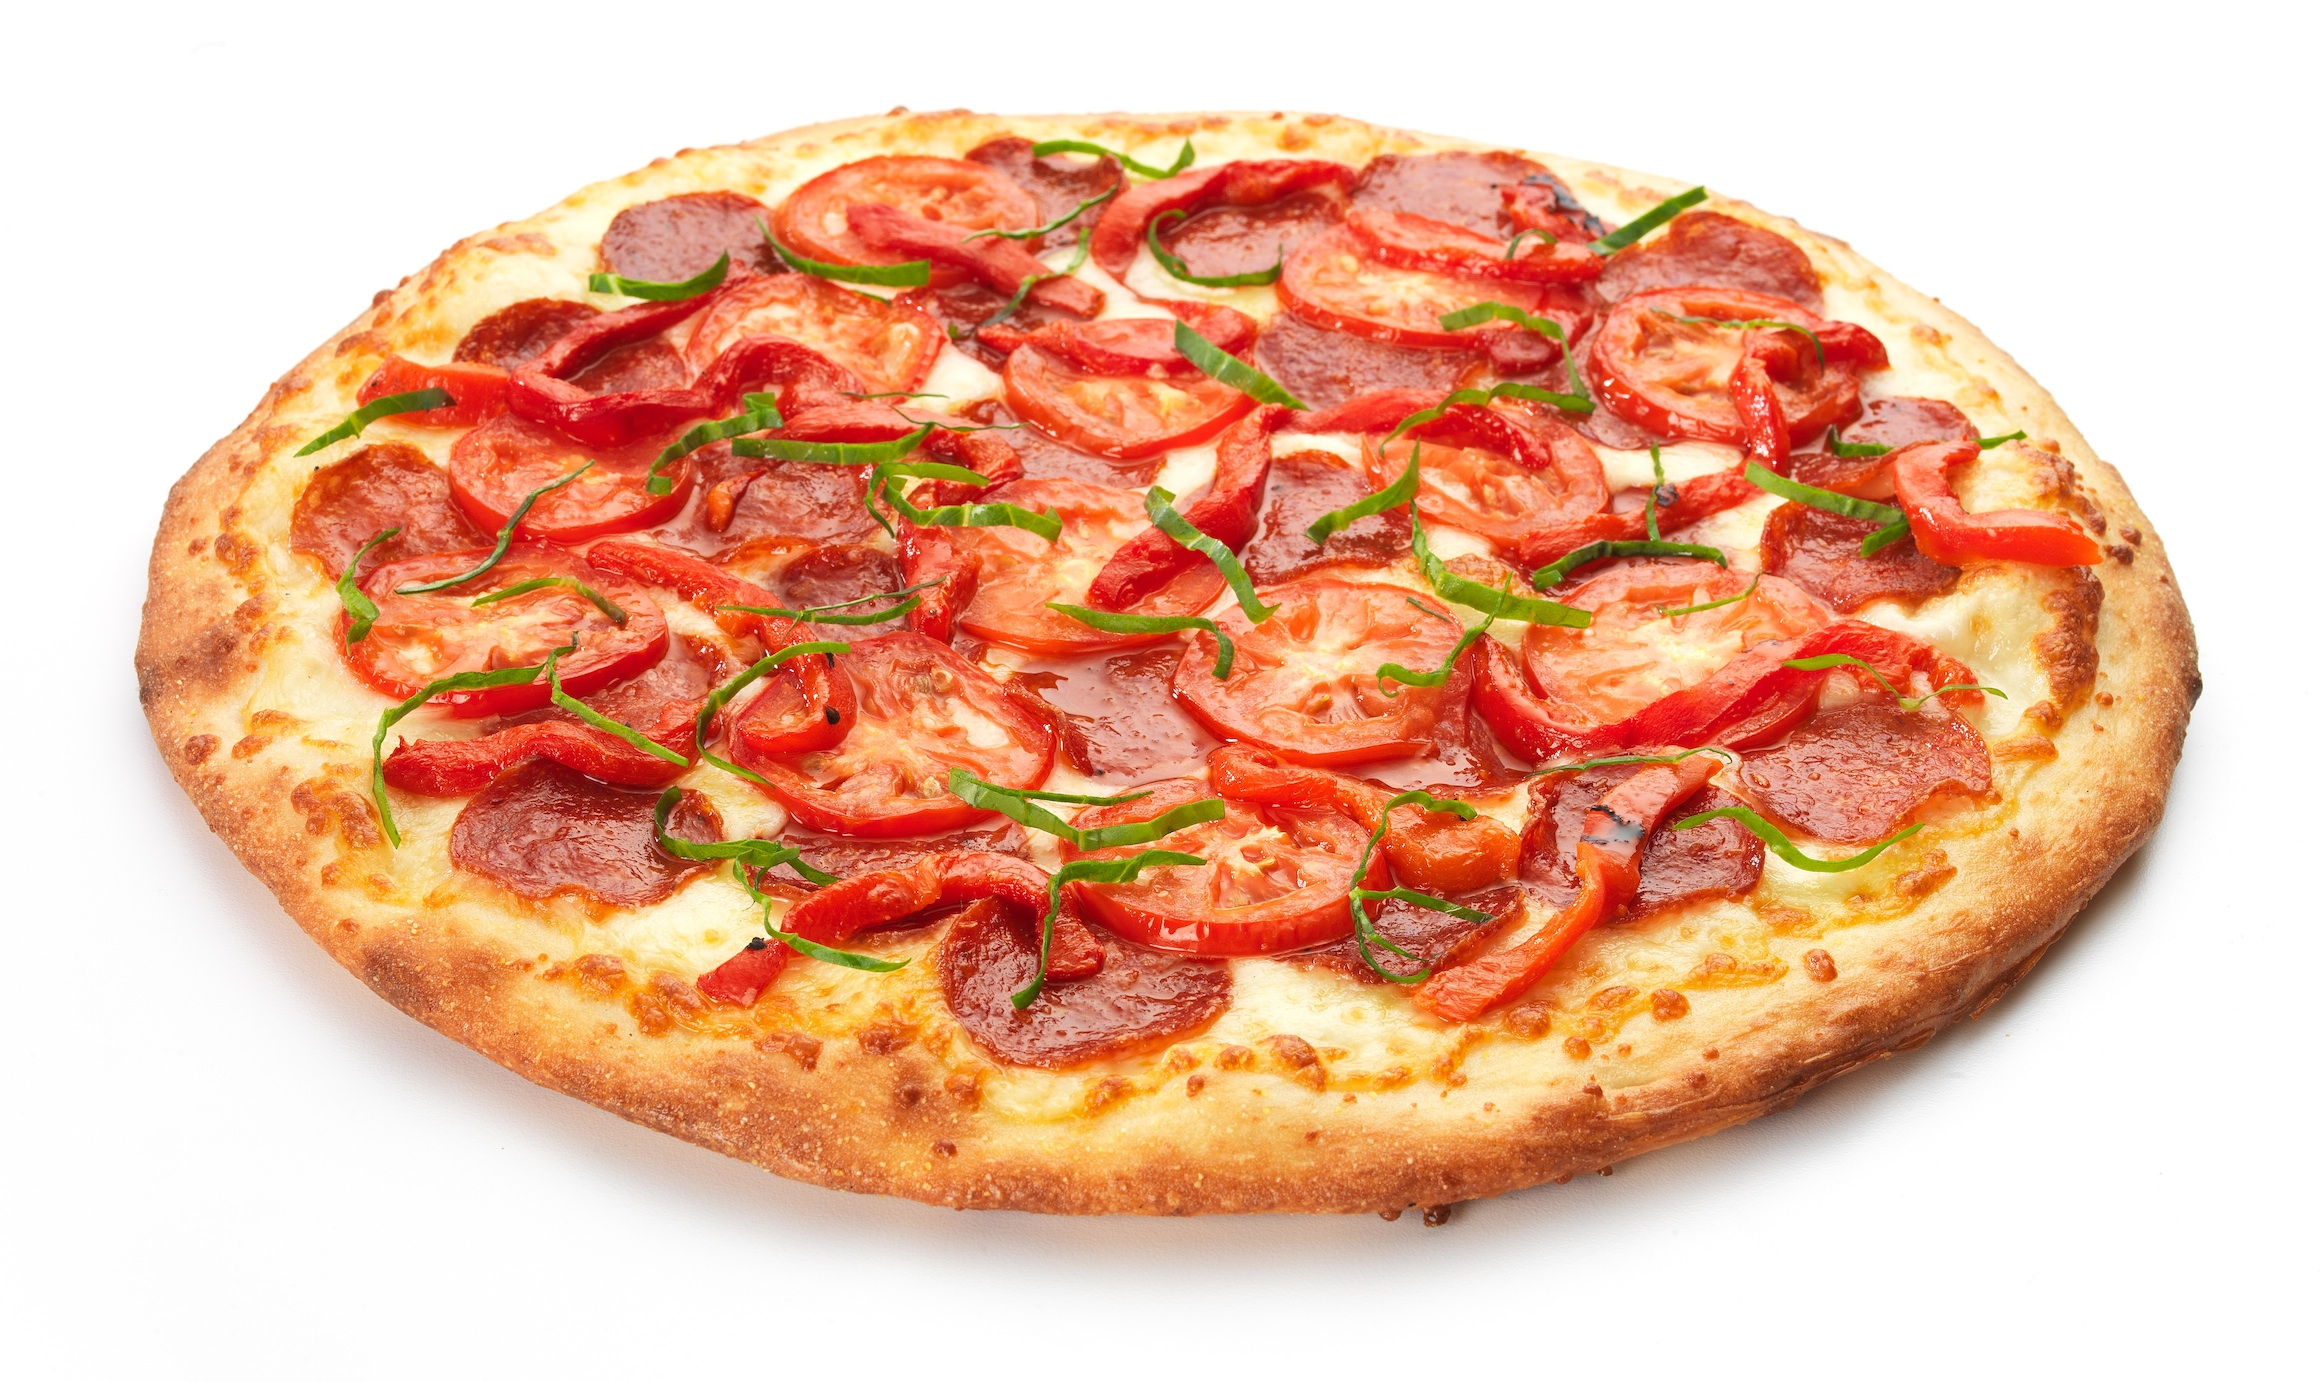 PNG HD Pizza - 146030